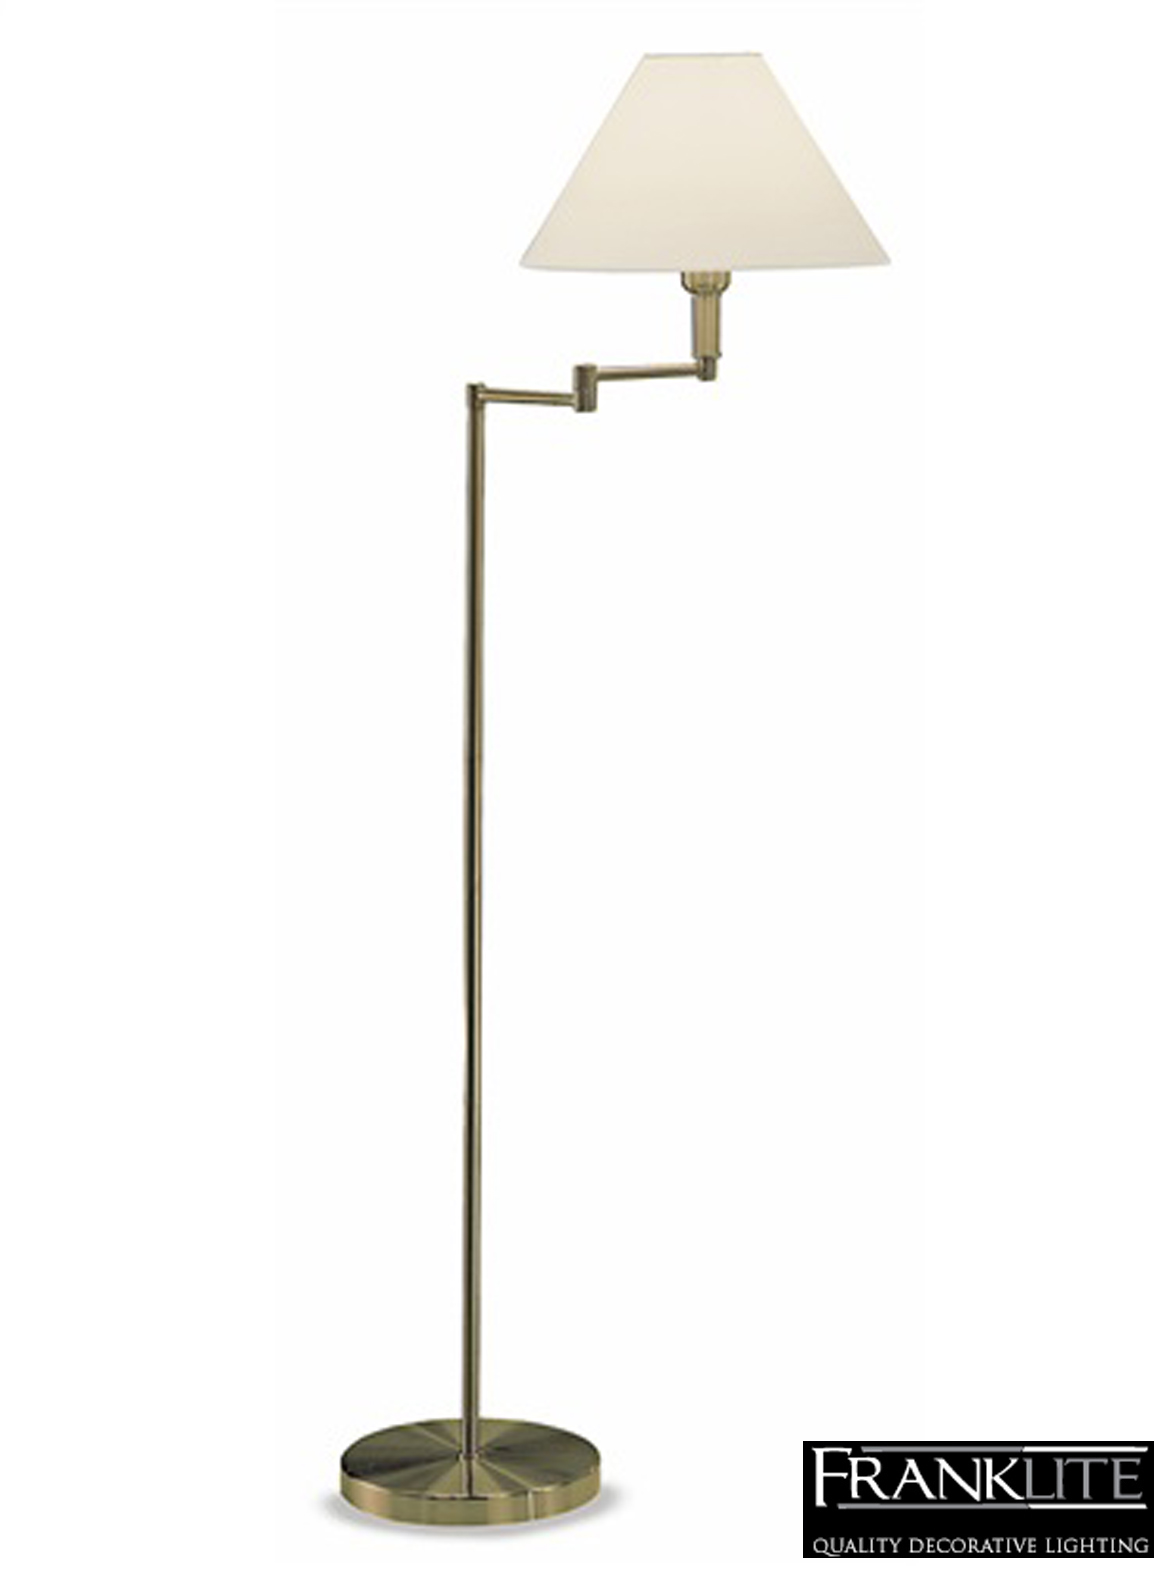 Franklite Swing Arm Floor Lamp Bronze Finish With Cream Shade SL662 From E